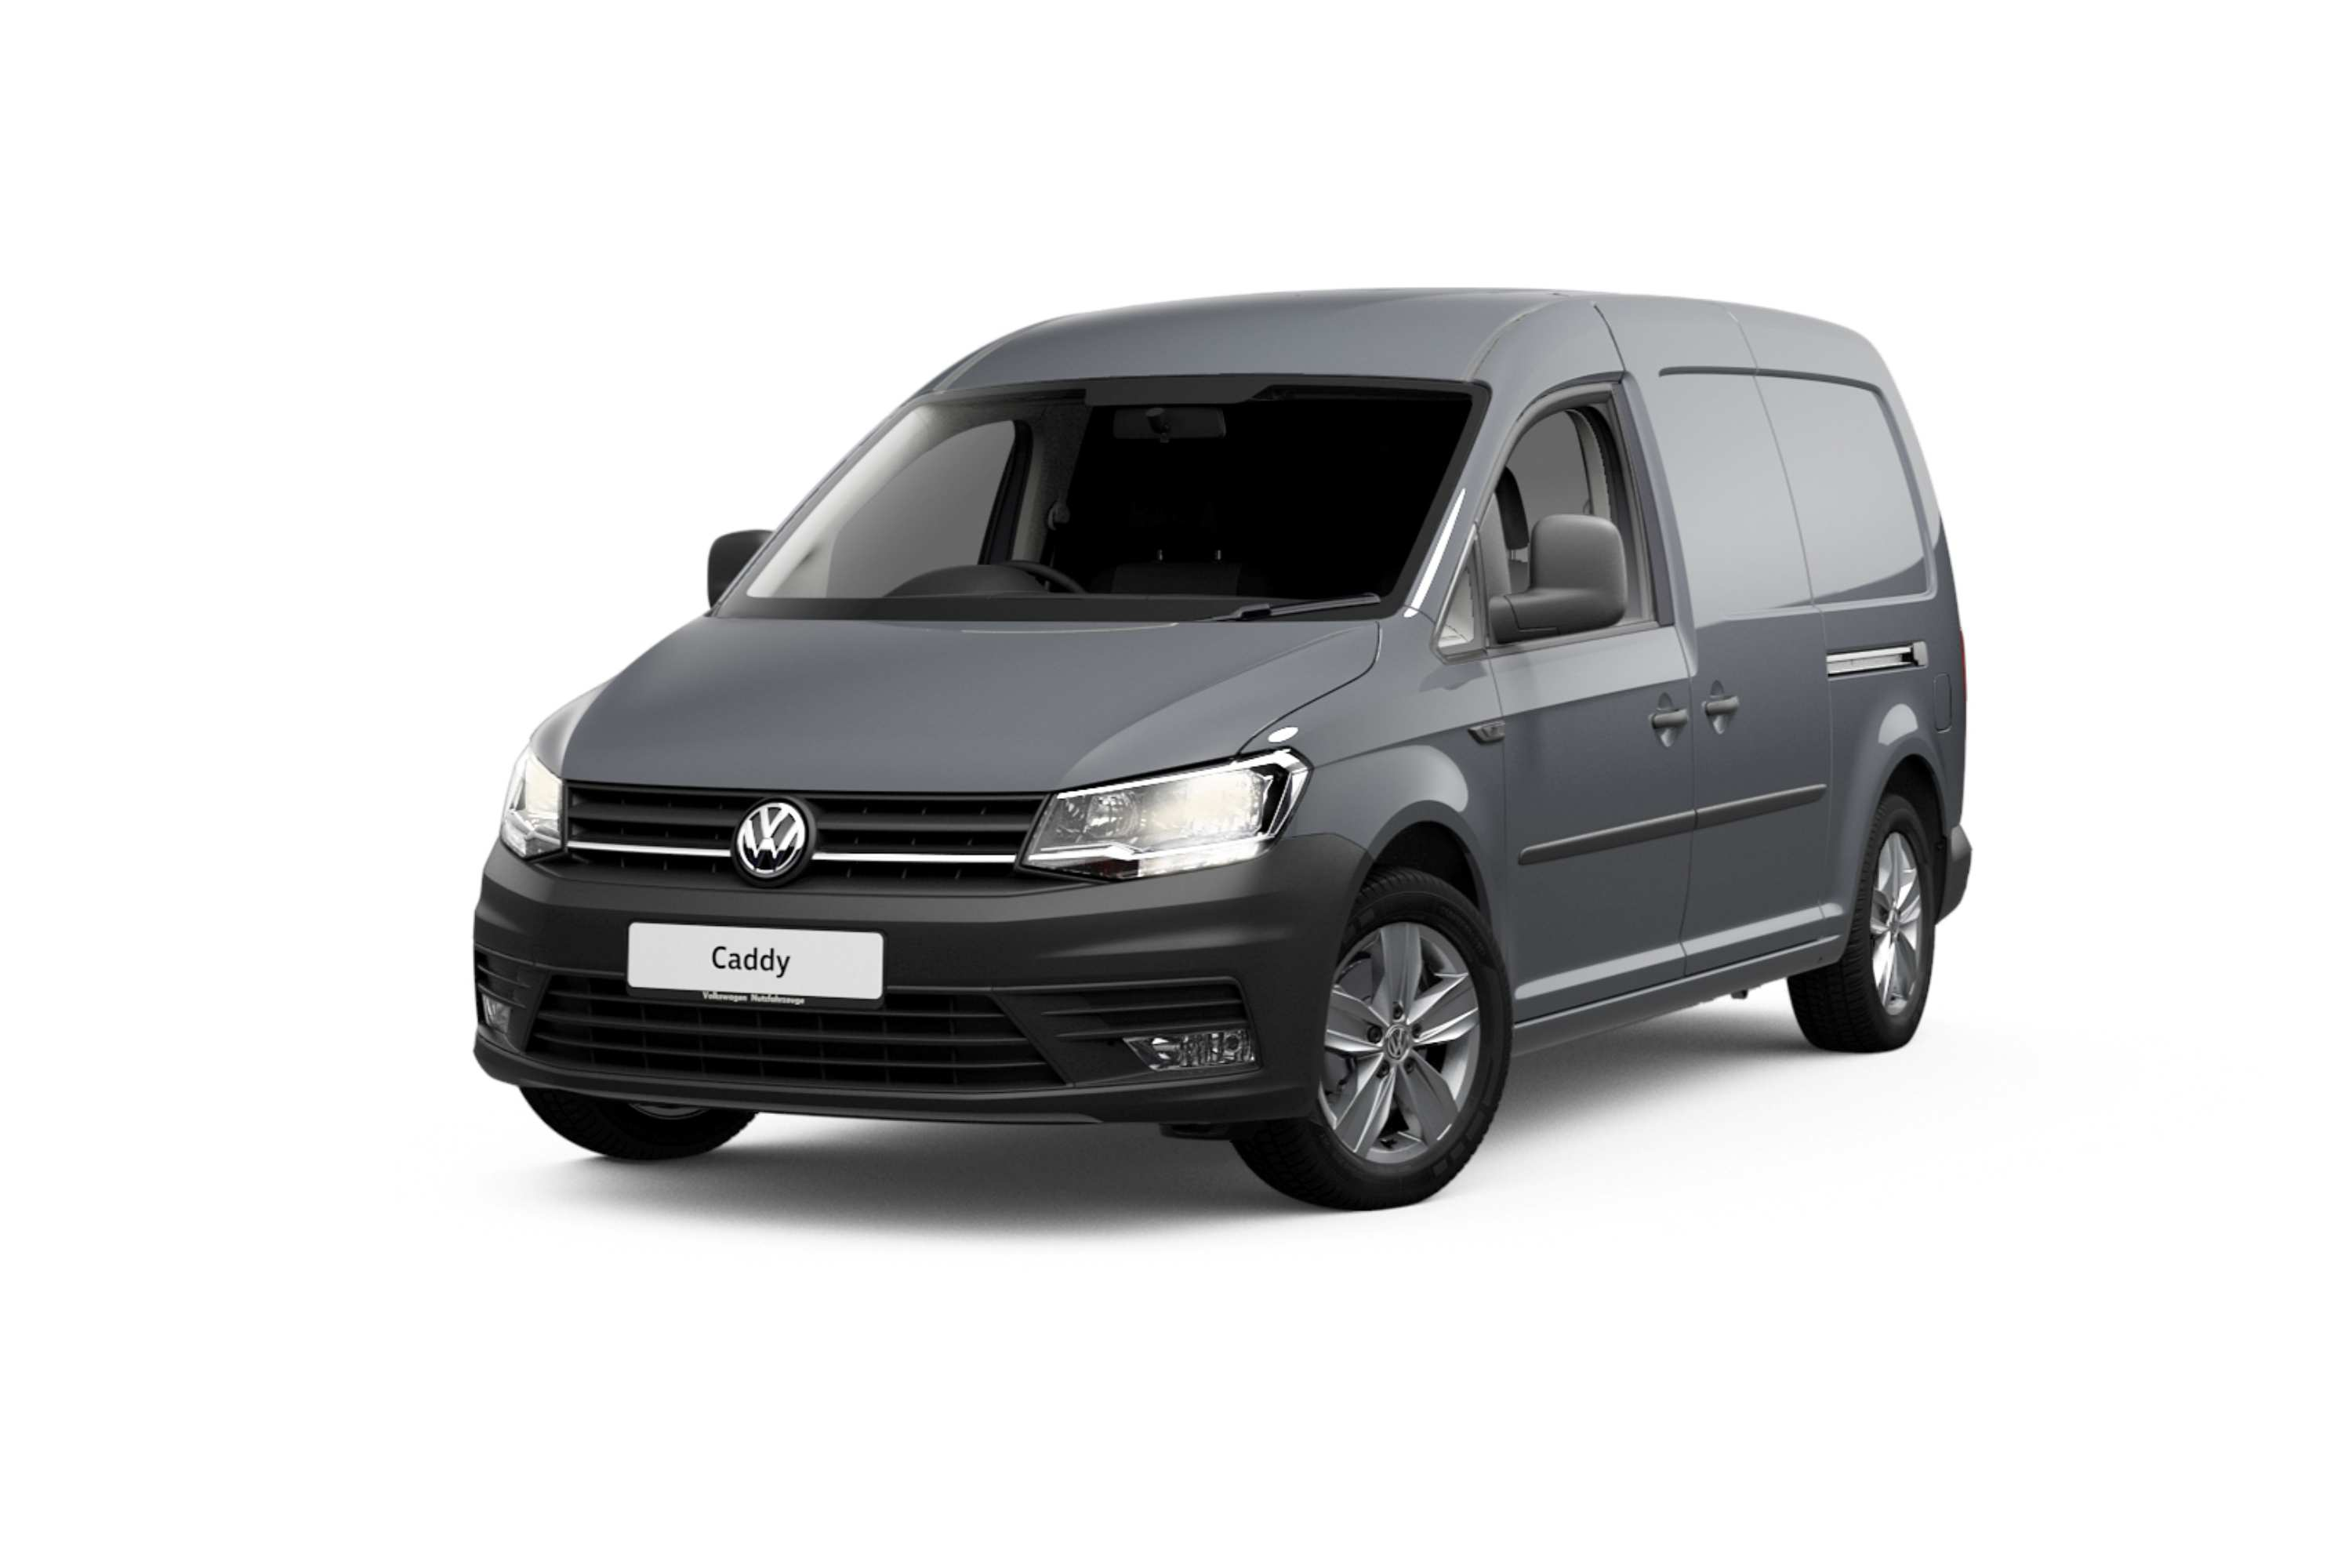 Based on the Caddy Maxi Van TSI220 with 92kW and 7-speed DSG, unique features include 16-inch alloy wheels, Composition Media with App-Connect and front fog lights with cornering function with a limited to 70 units.